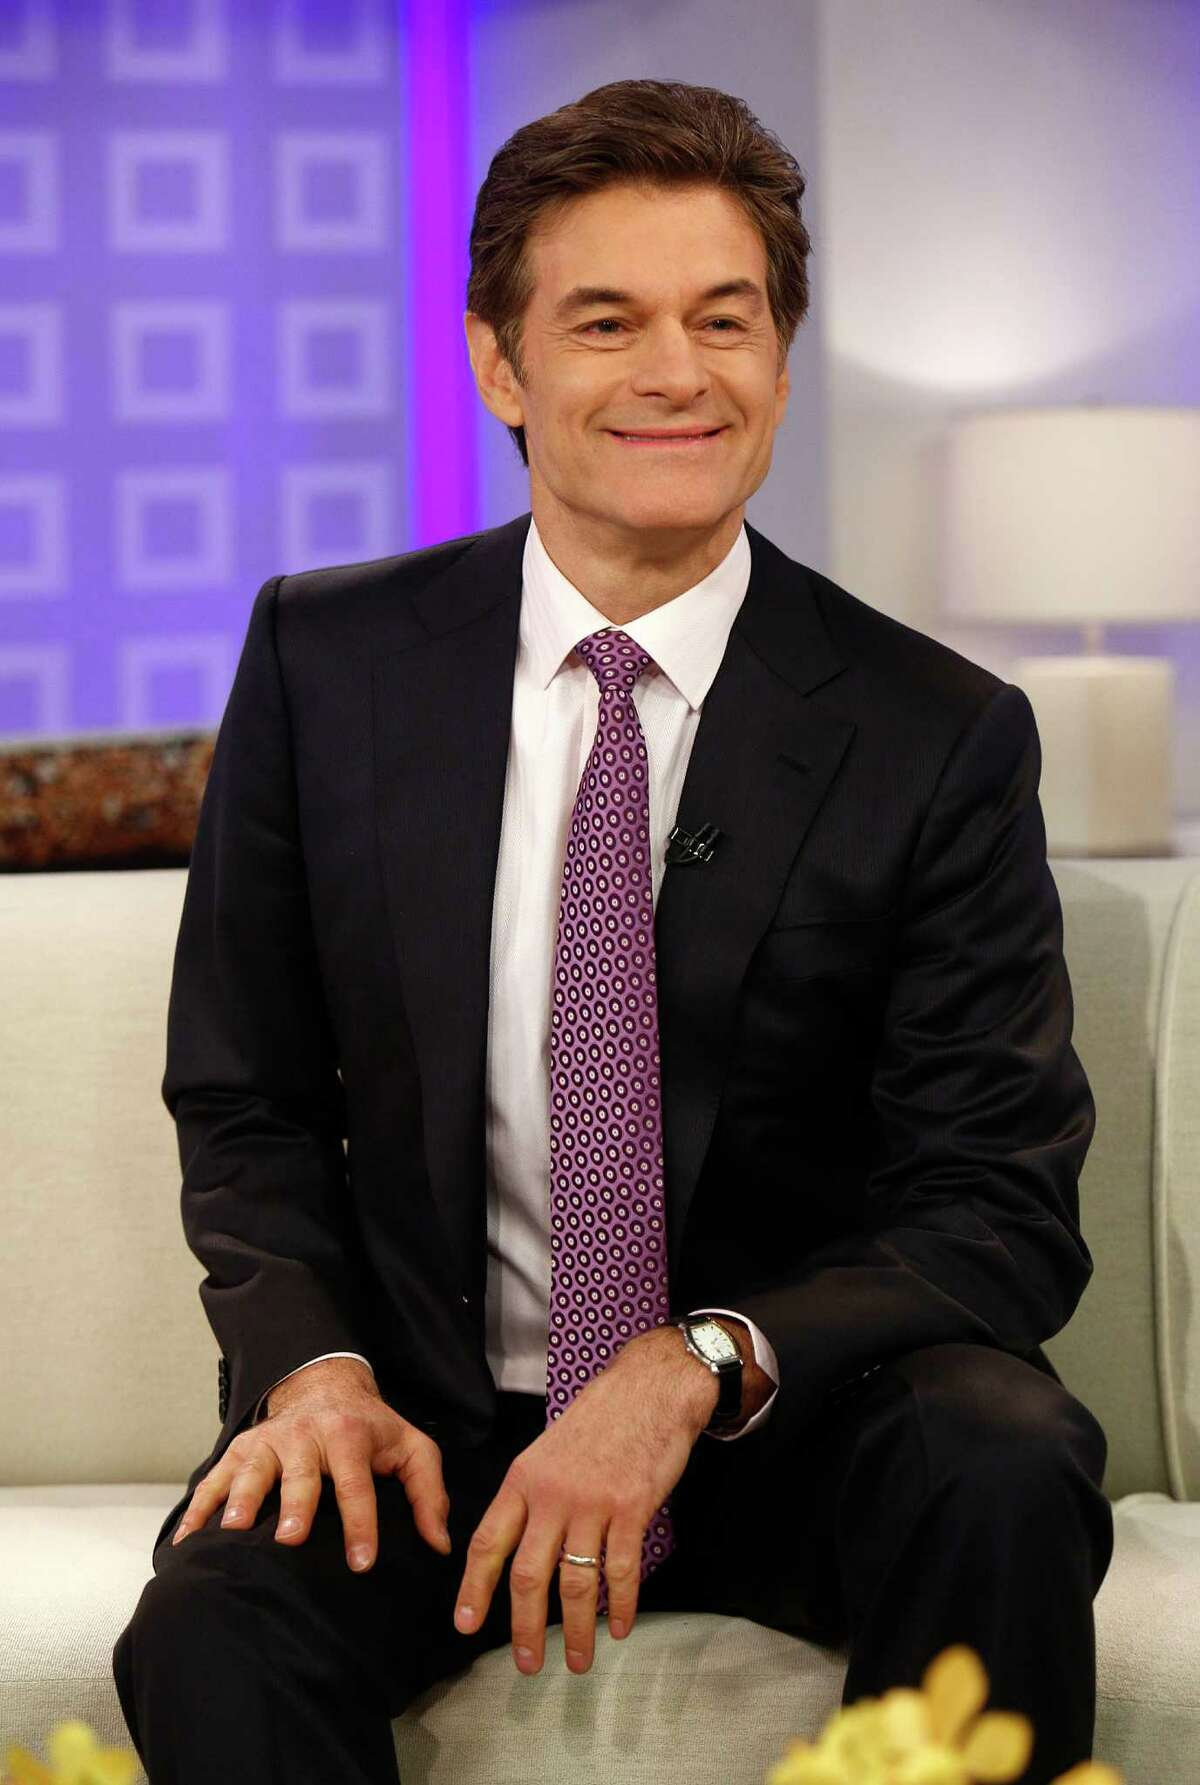 Dr. Mehmet Oz will make an appearance Saturday at Memorial City Mall.